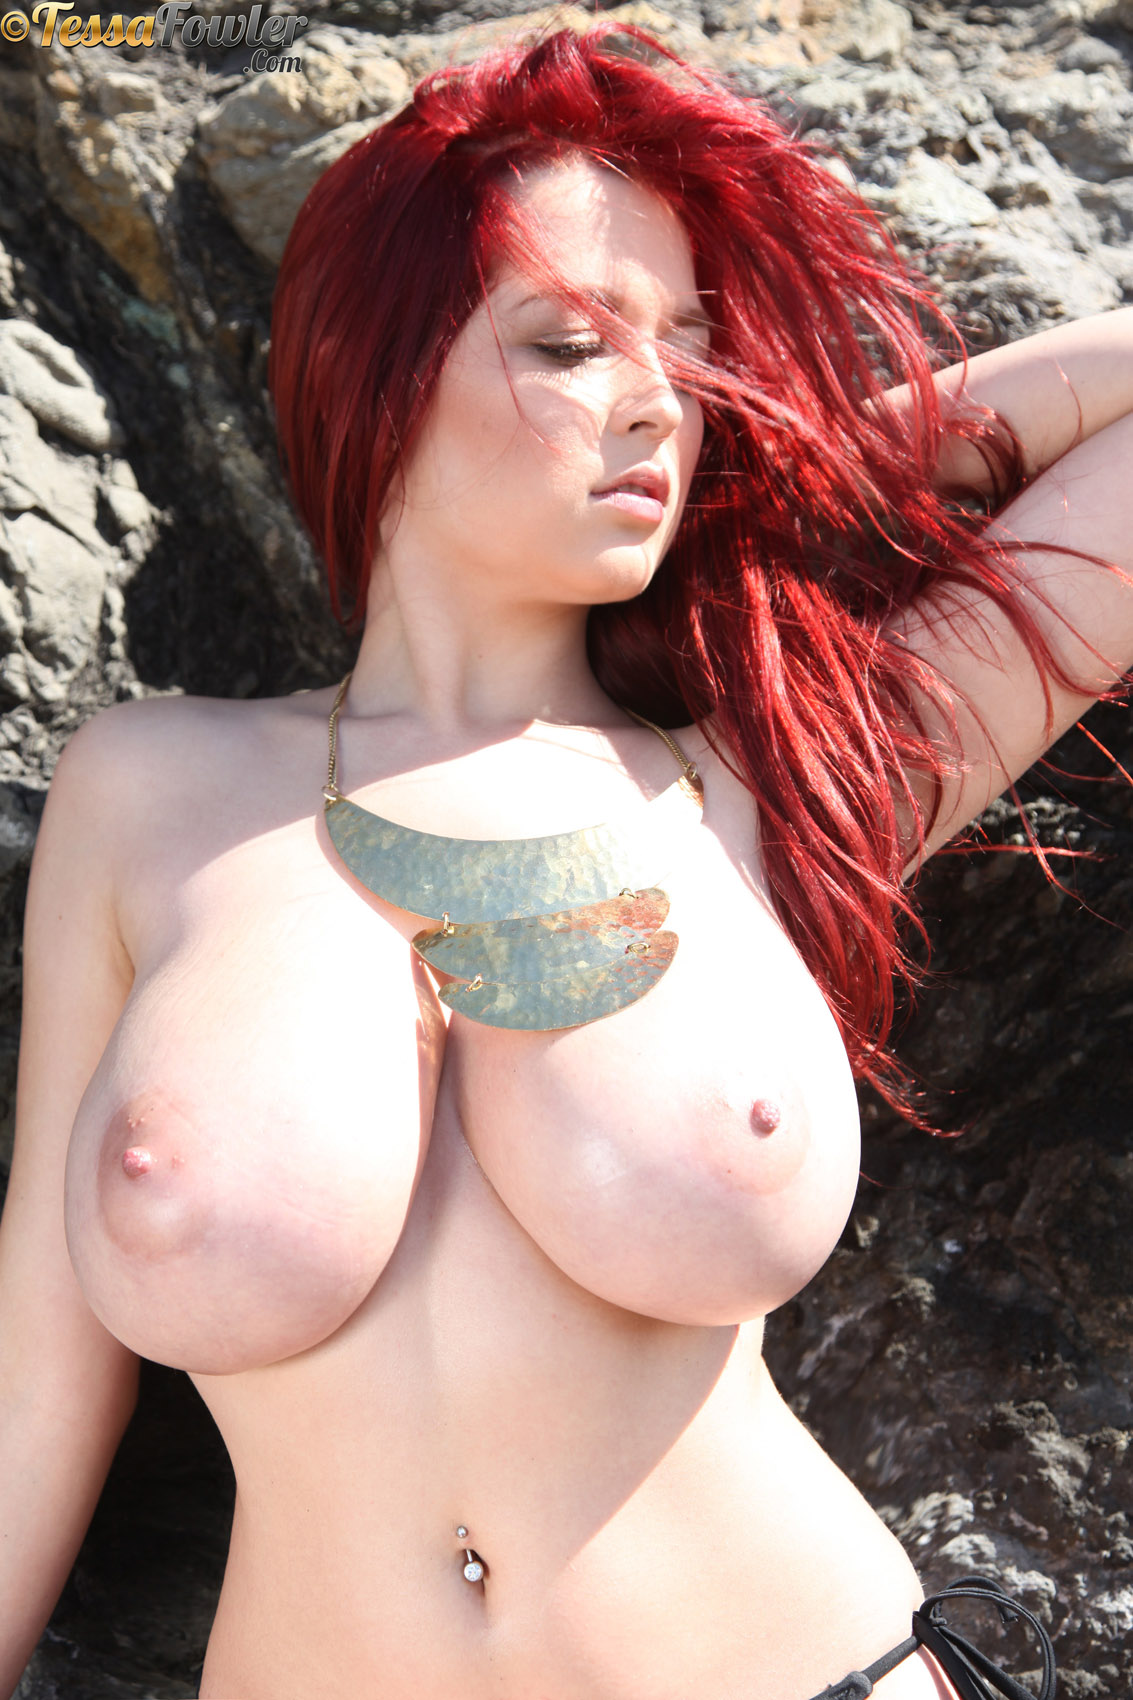 red hair tits